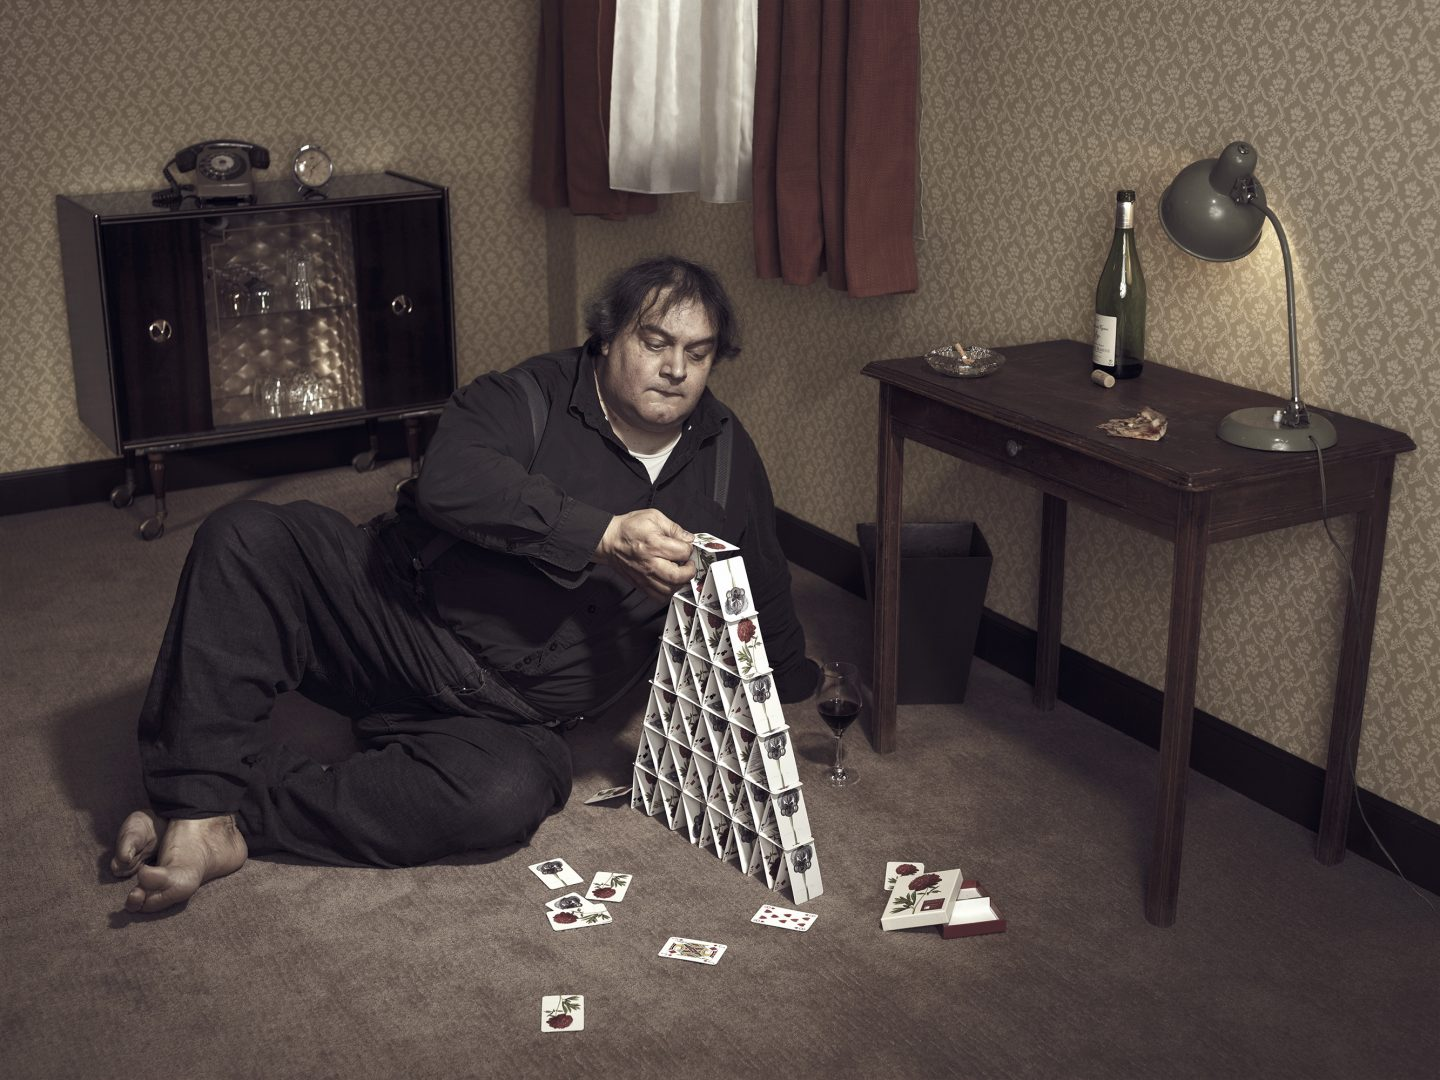 Man on floor is building a card house in room 42 by Stefan Rappo